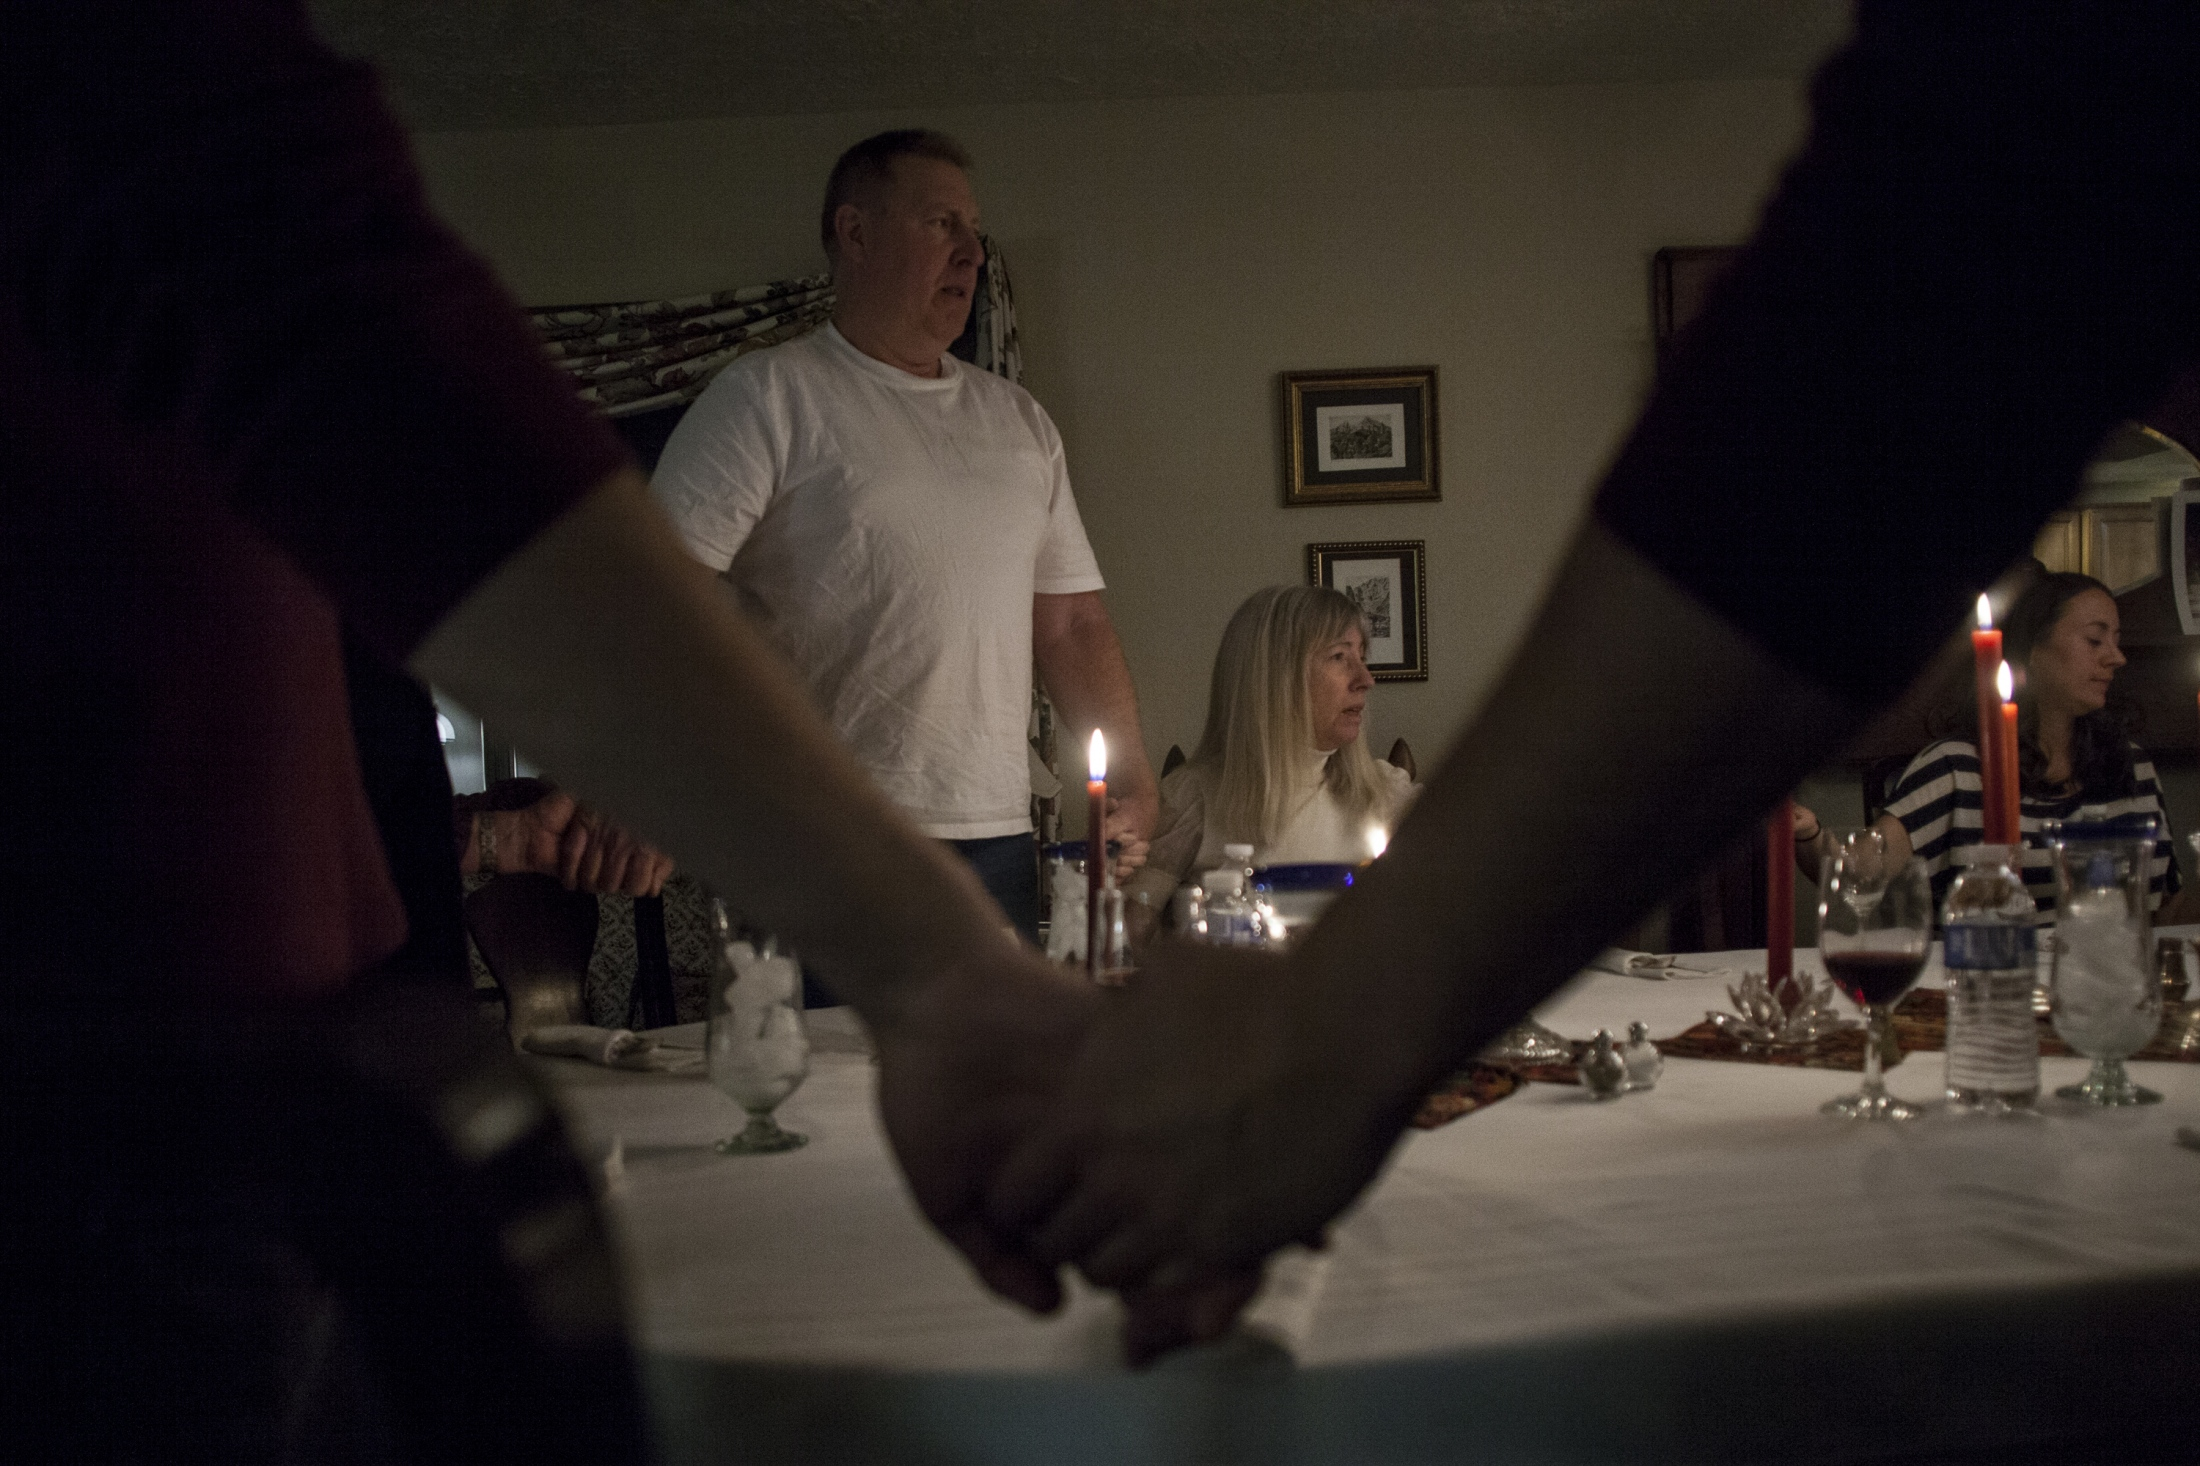 Nancy and her husband, Bill, hold hands in prayer at Thanksgiving dinner in November of 2013. The family still continued to include Nancy in normal family gatherings and routine errands until she became too difficult to take out in public as she would sometimes throw food at the table or inappropriately approach strangers.